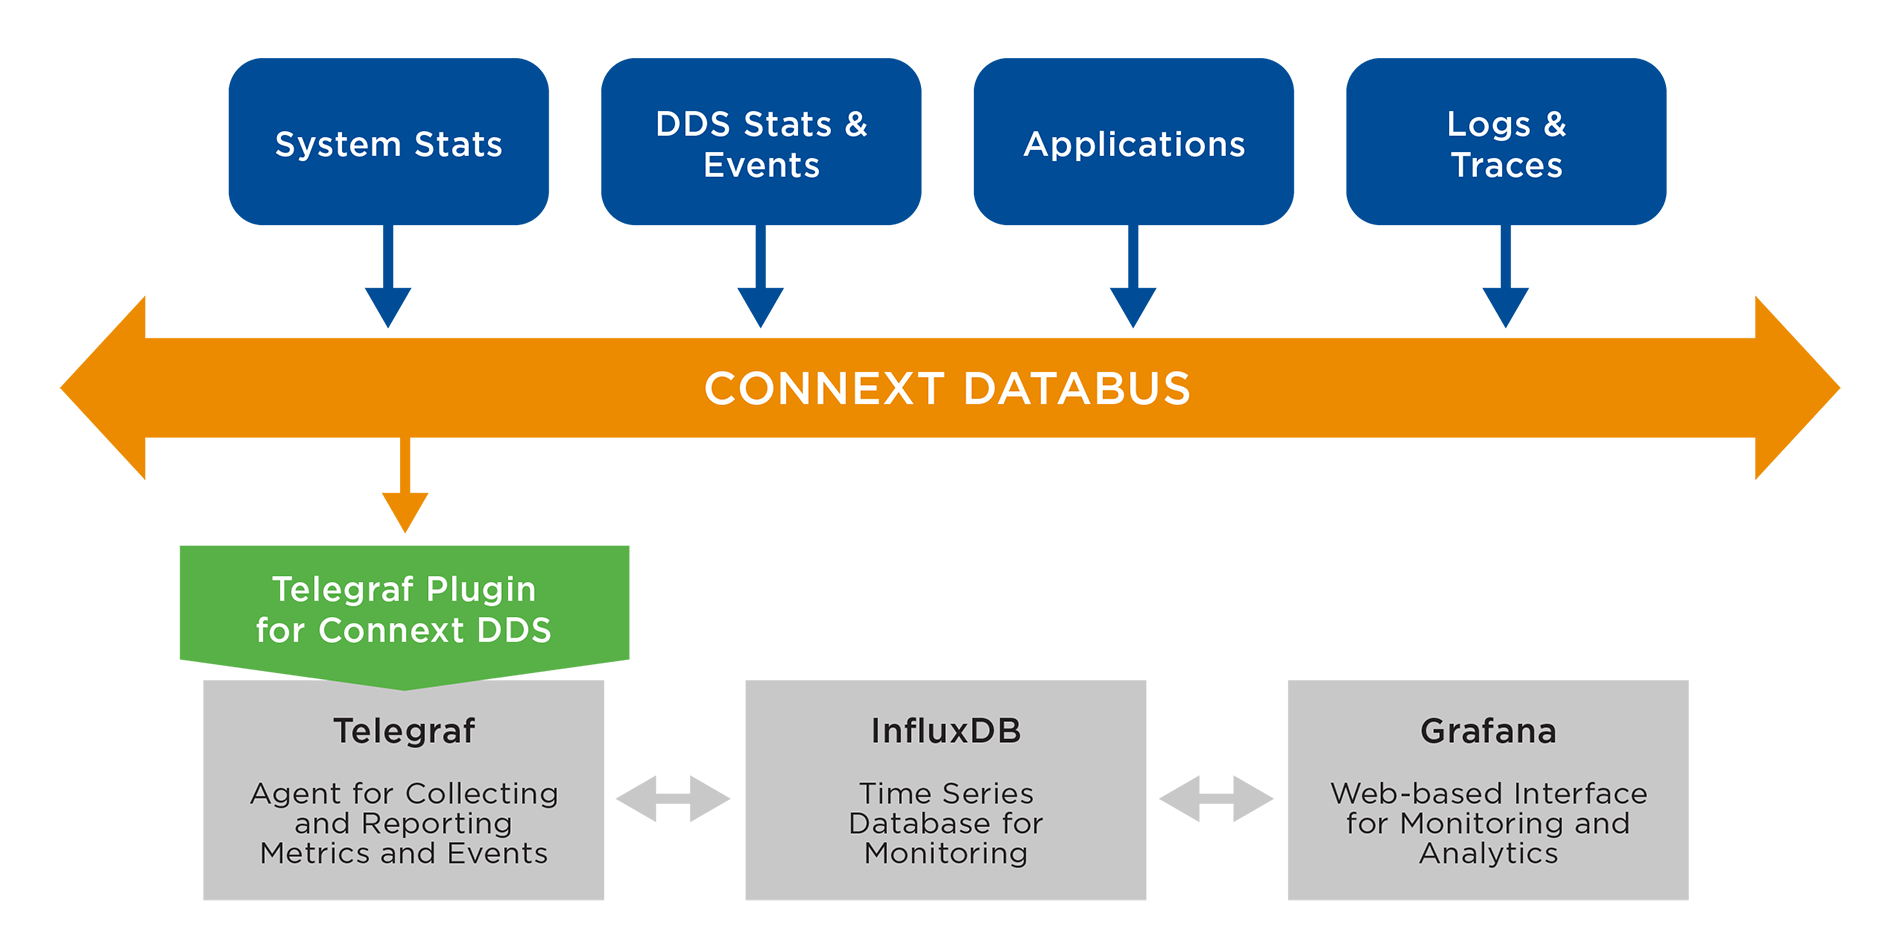 Telegraf Plugin for Connext DDS: Build a Time-Series Monitoring